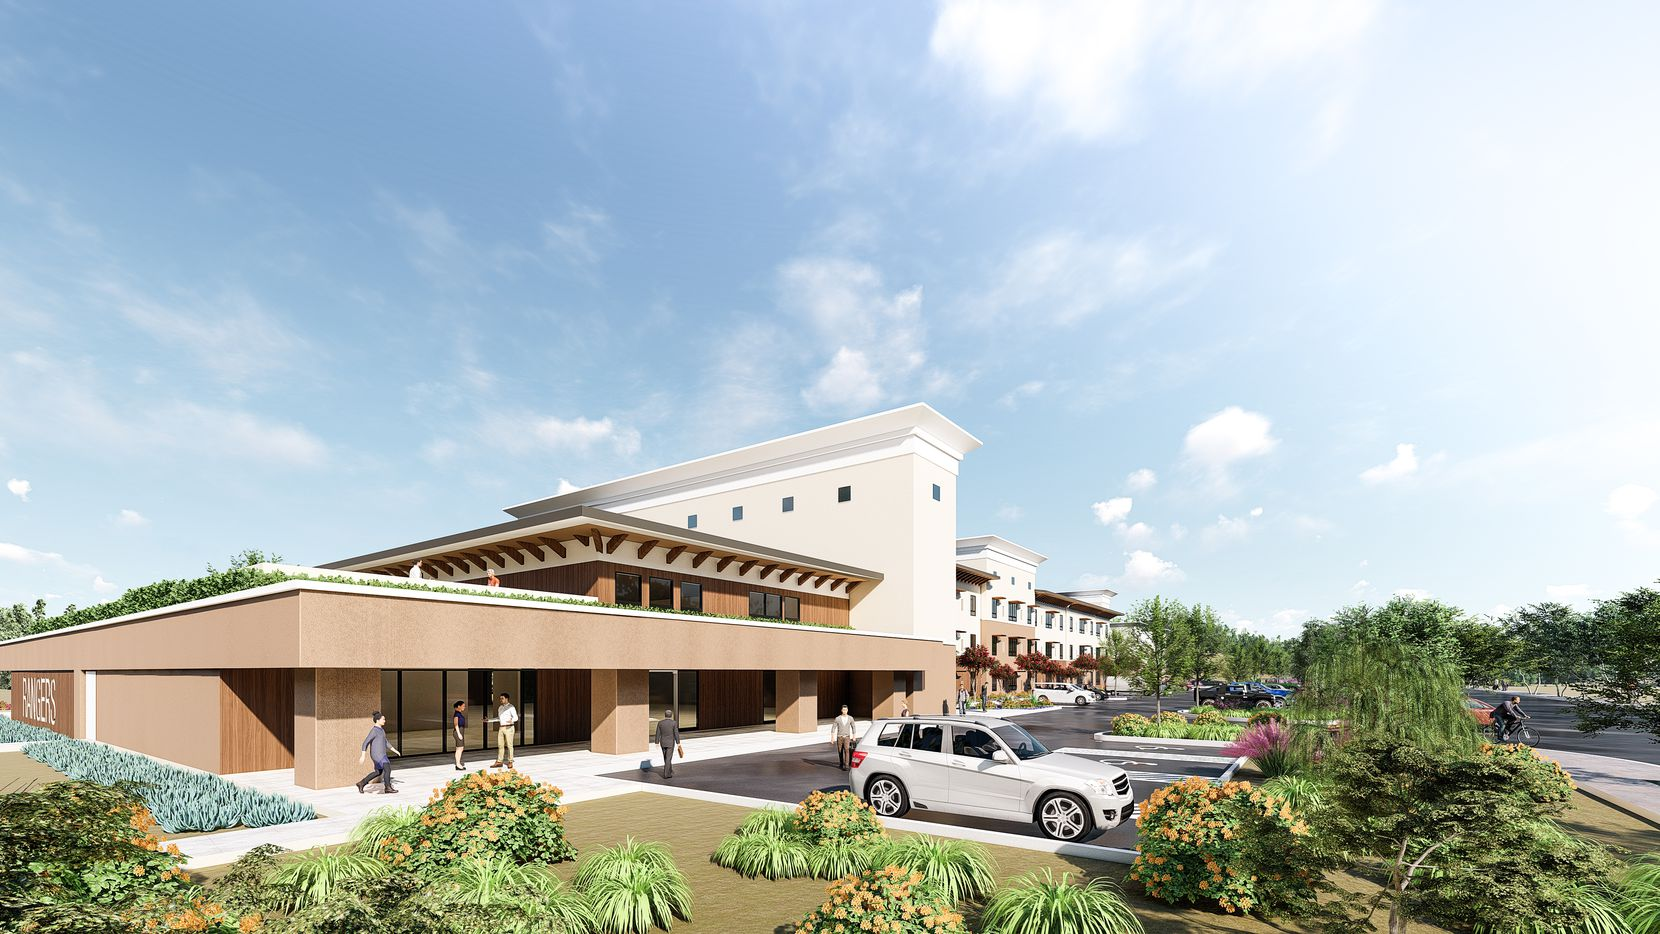 A rendering of the Texas Rangers' new baseball housing facility in Surprise, Ariz.